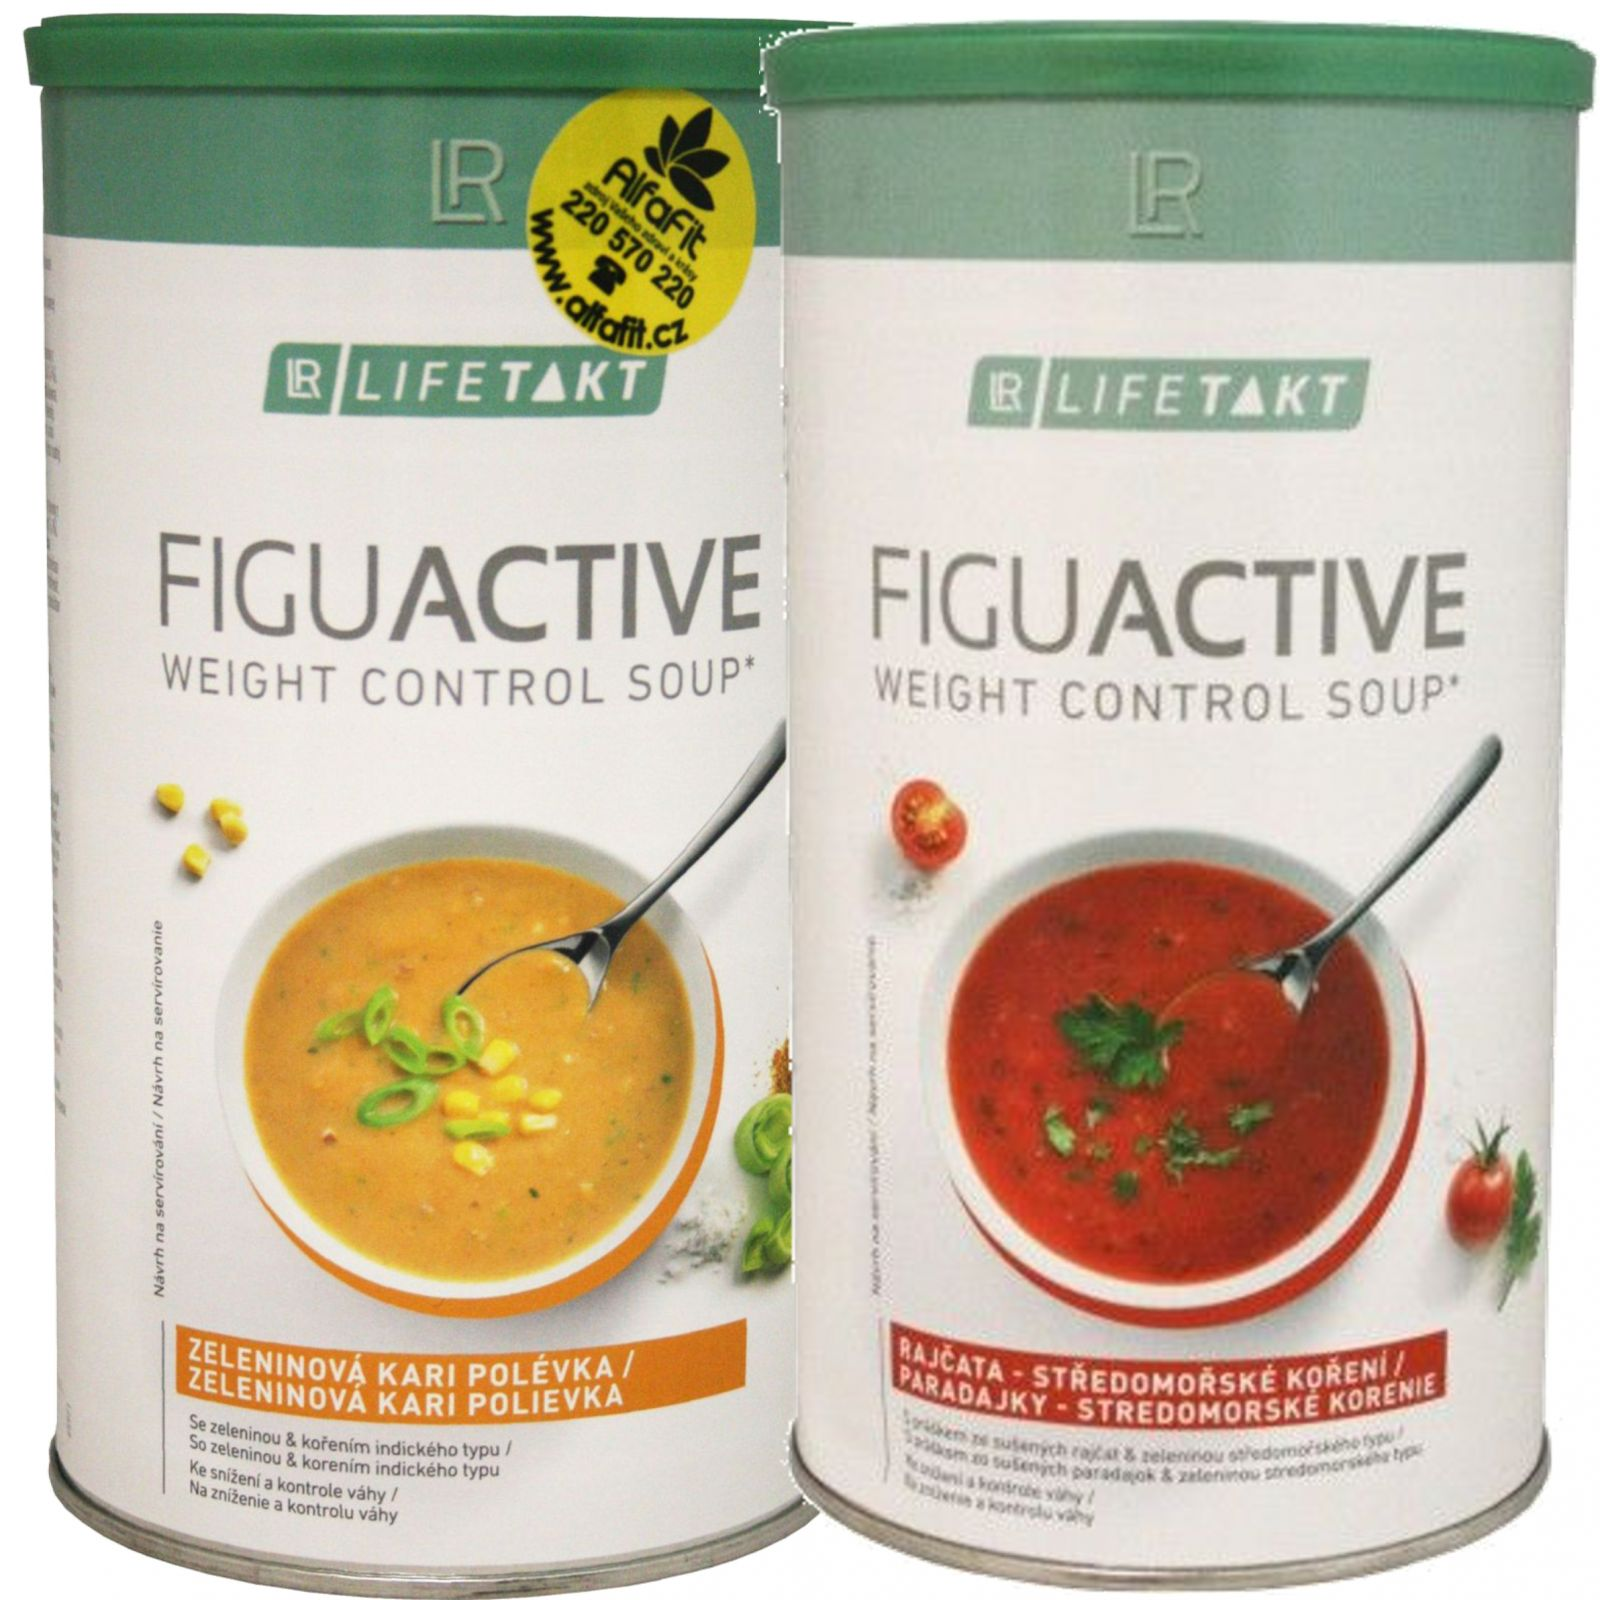 Set LR Suppe - 2x SET LR LIFETAKT Figu Aktiv Suppe 500 g